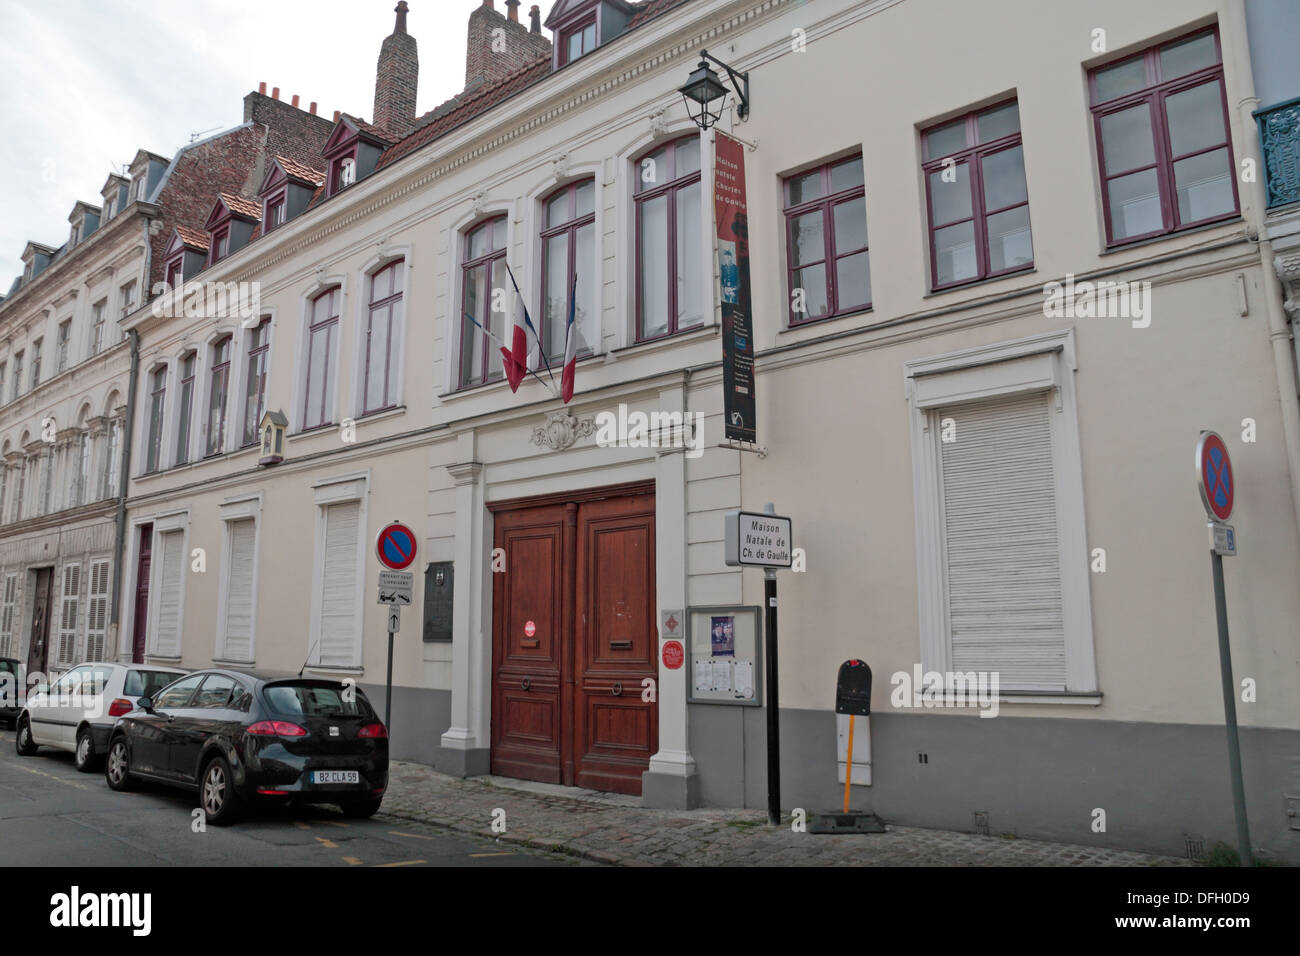 Charles de Gaulle birthplace and museum,9 Rue Princesse, Lille, Nord-Pas-de-Calais, Nord, France. - Stock Image